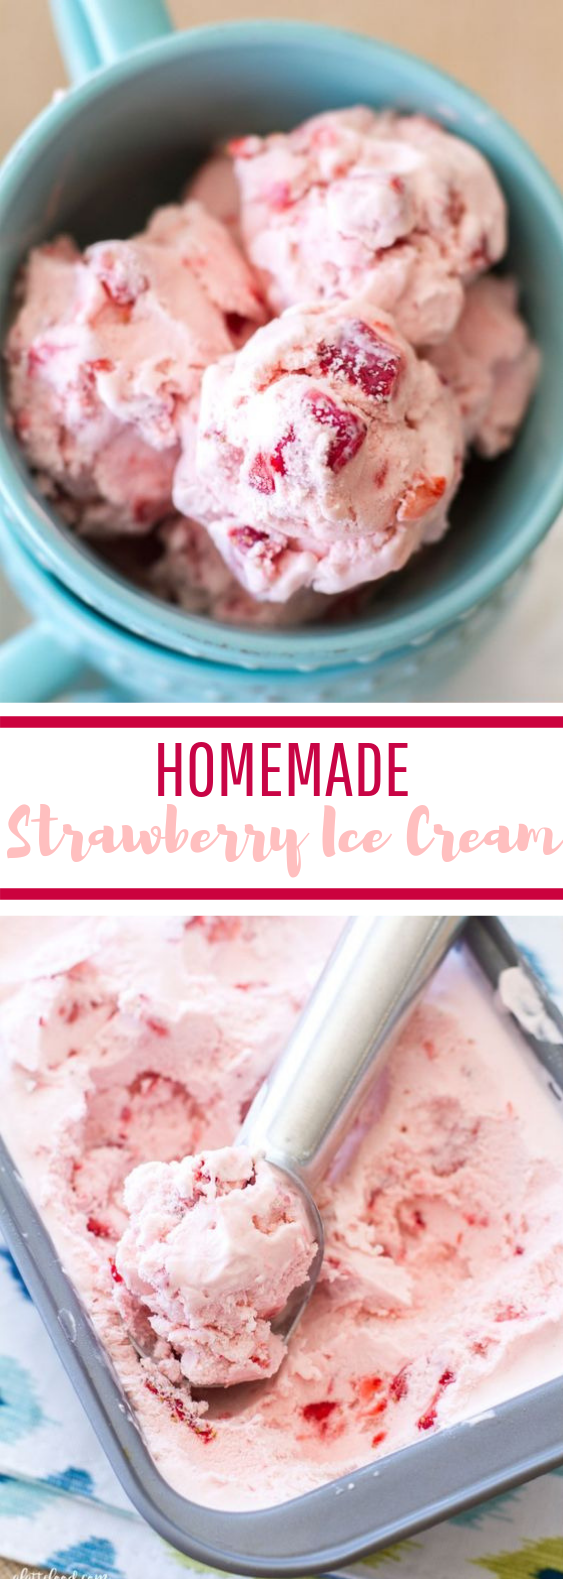 Homemade Strawberry Ice Cream #summer #easyrecipe